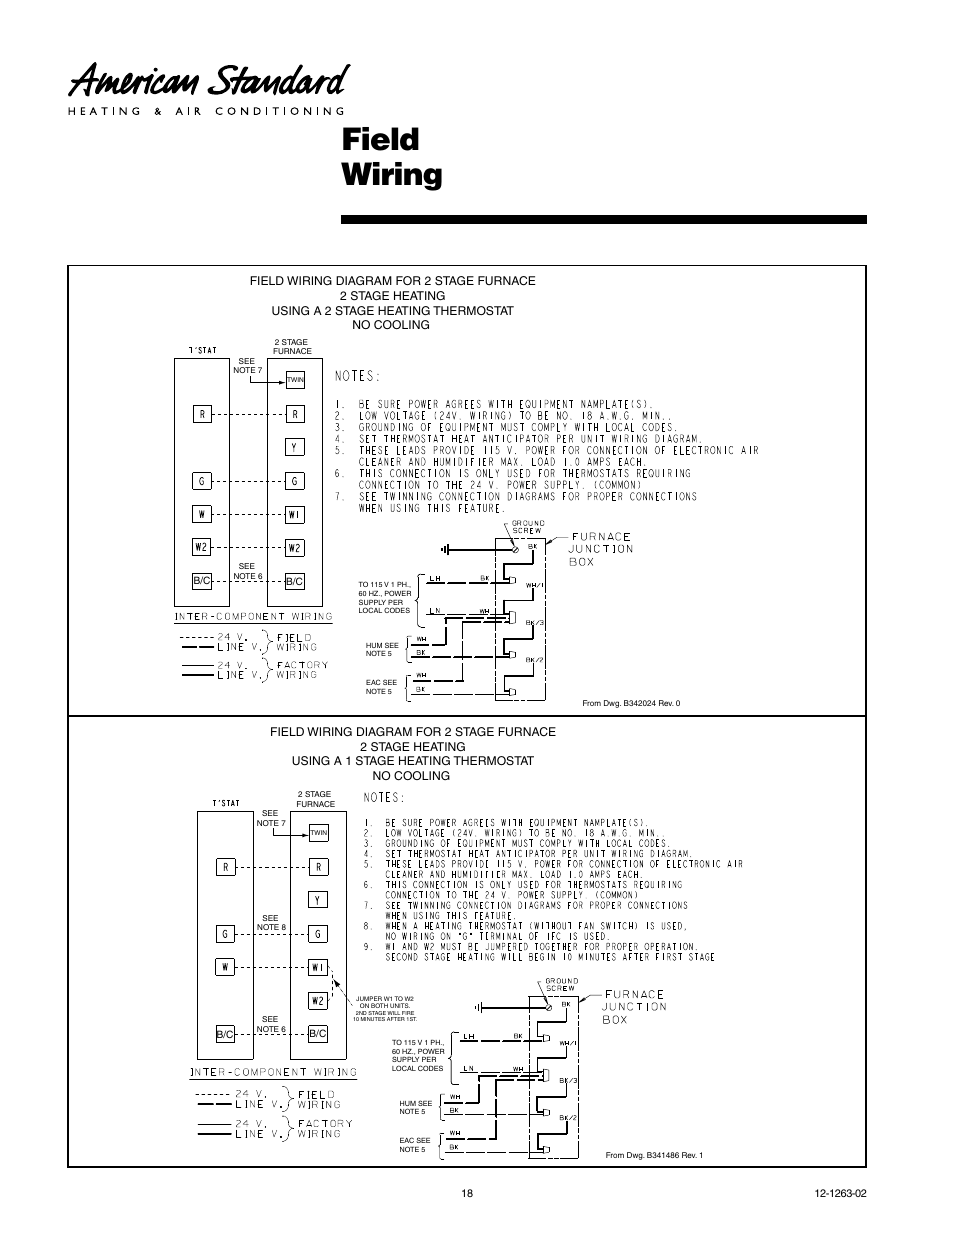 american standard freedom 80 page18 field wiring american standard freedom 80 user manual page 18 24 2-stage furnace thermostat wiring diagram at eliteediting.co